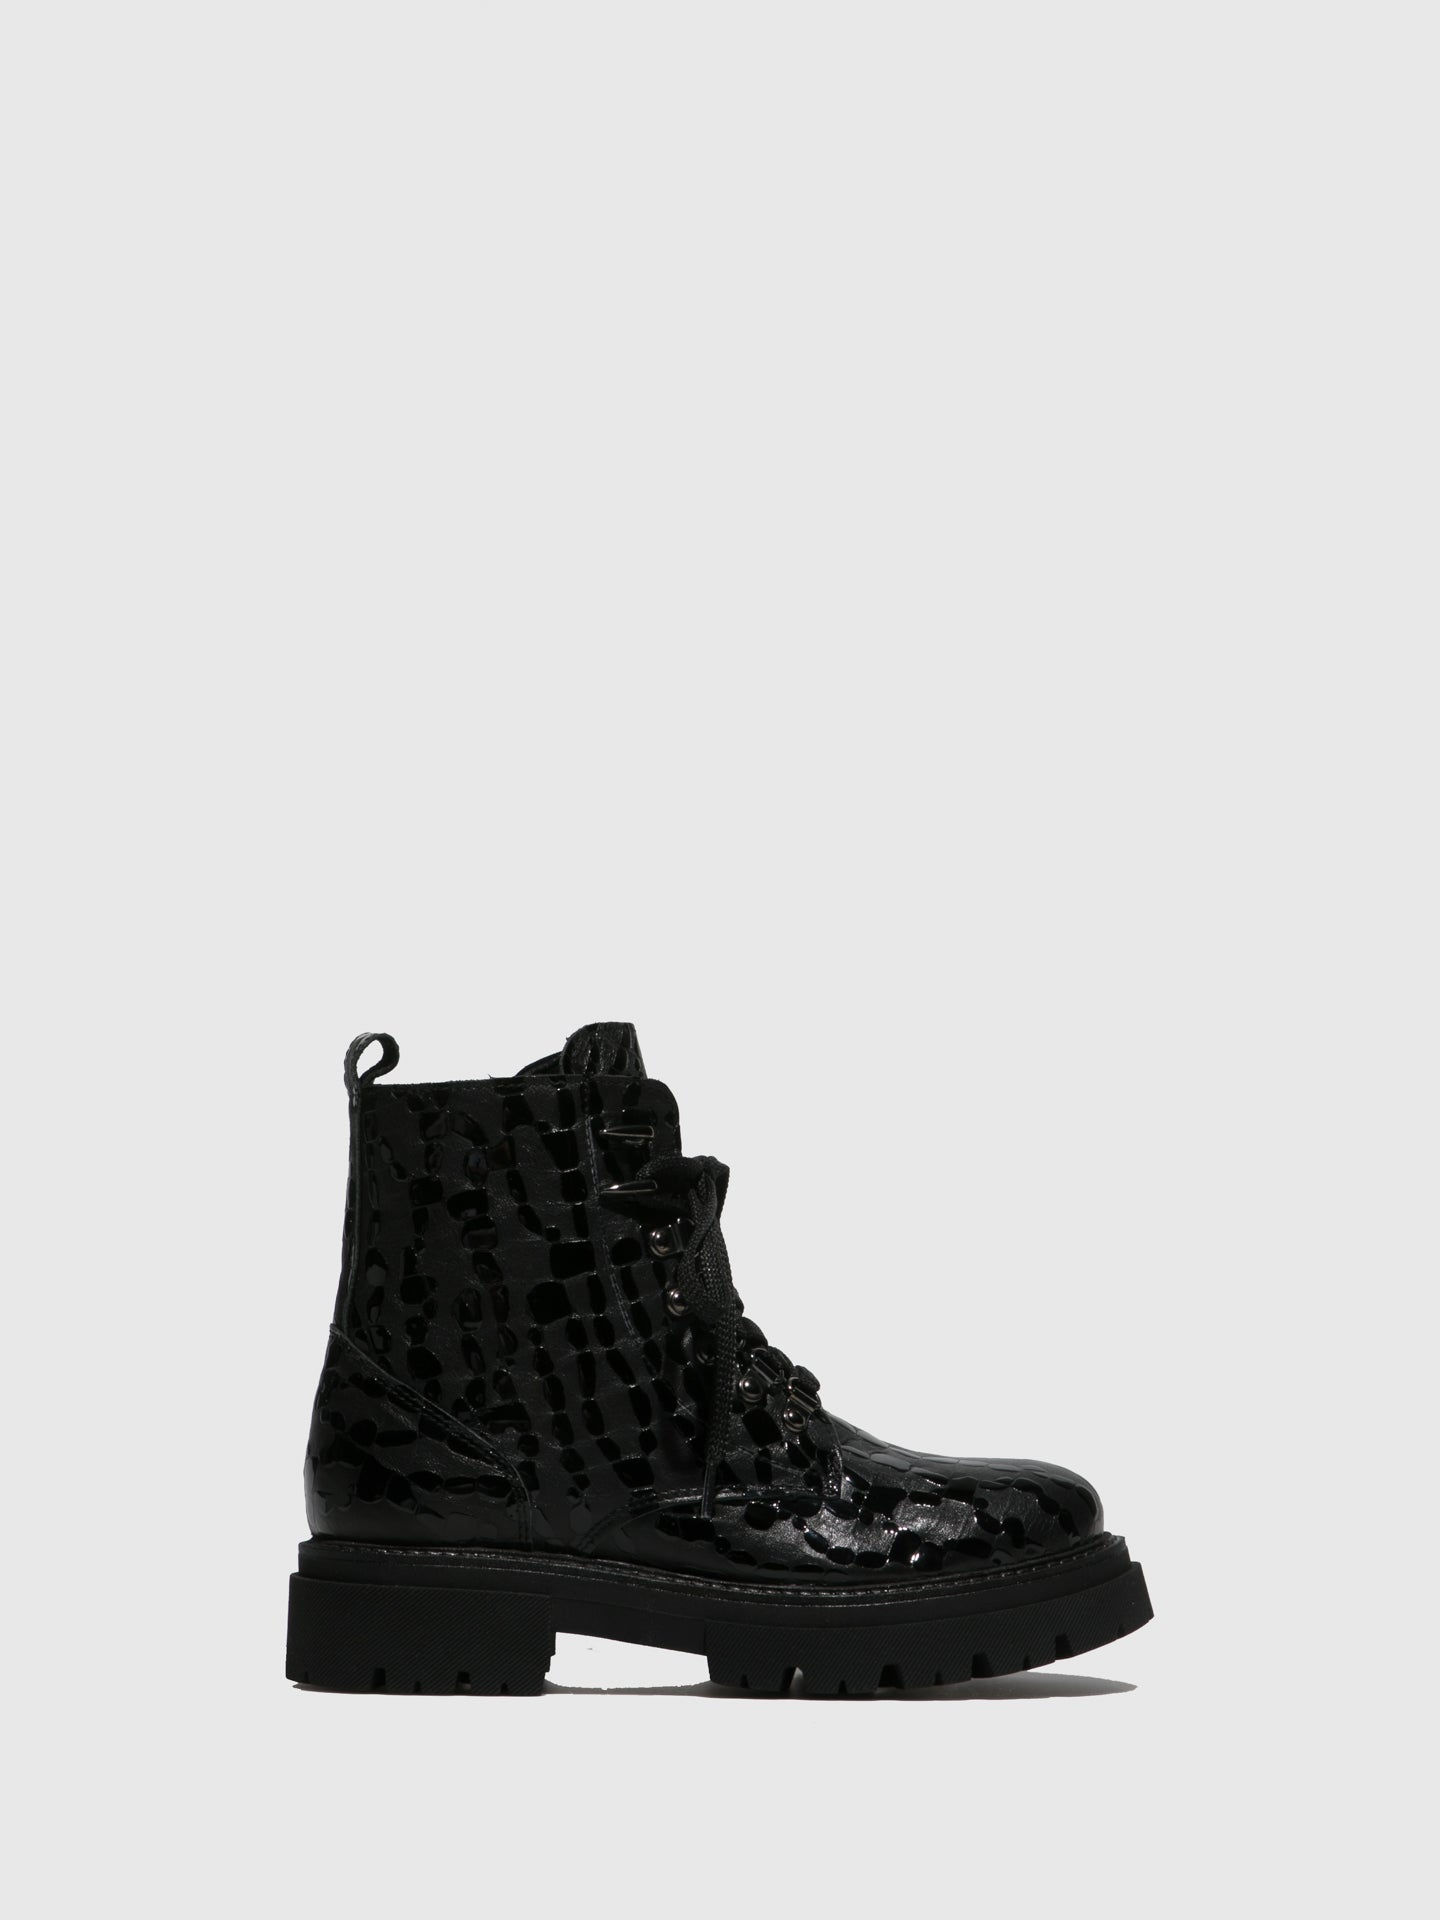 Fungi Gloss Black Lace-up Boots